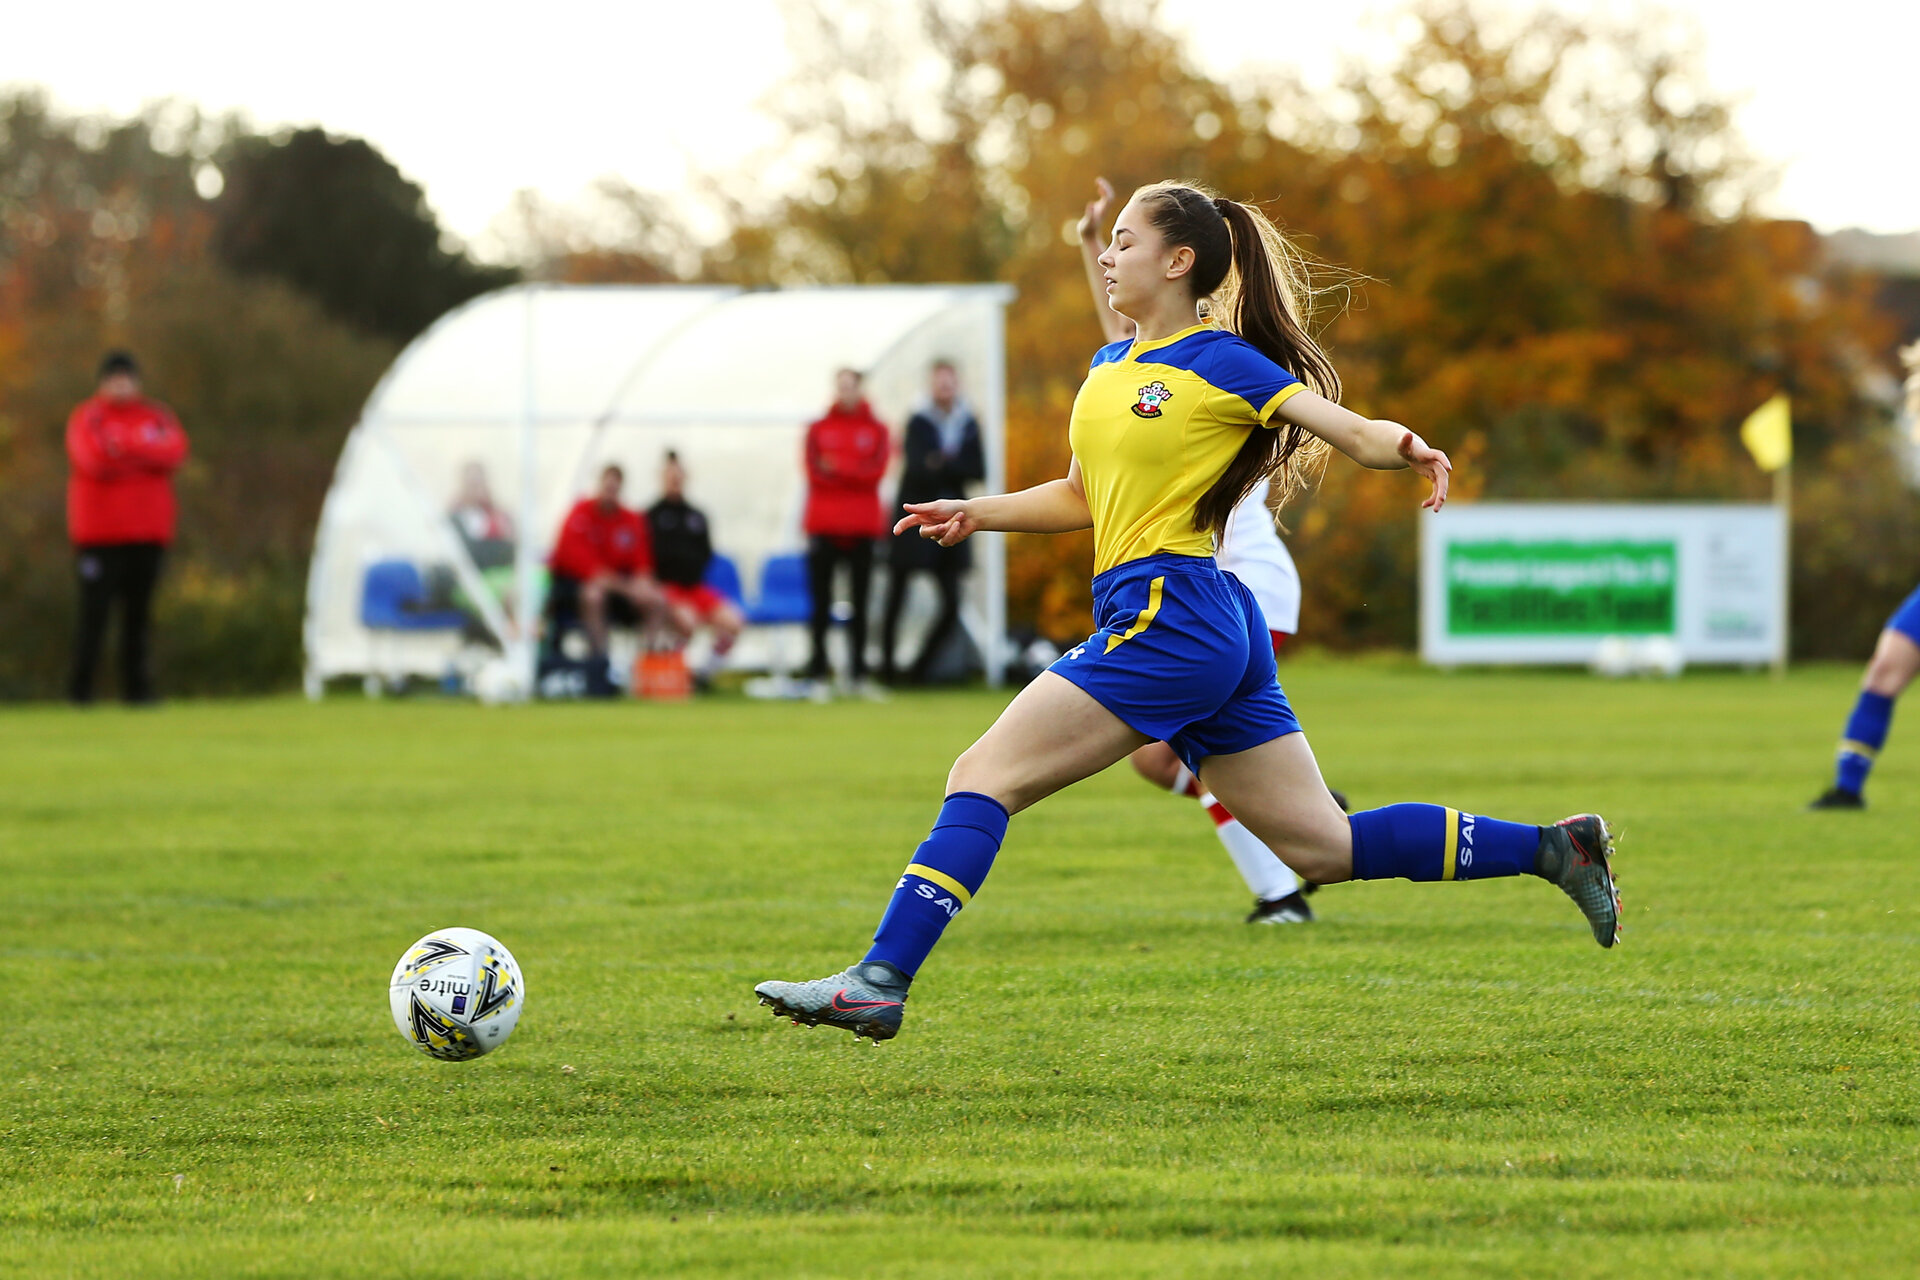 SOUTHAMPTON, ENGLAND - NOVEMBER 11: during the Women's FA Cup Round 1 match  between Poole Town FC and Southampton FC at Milbourne St Andrews Sport Ground on November 11, 2018 in Southampton, England. (Photo by James Bridle - Southampton FC/Southampton FC via Getty Images)